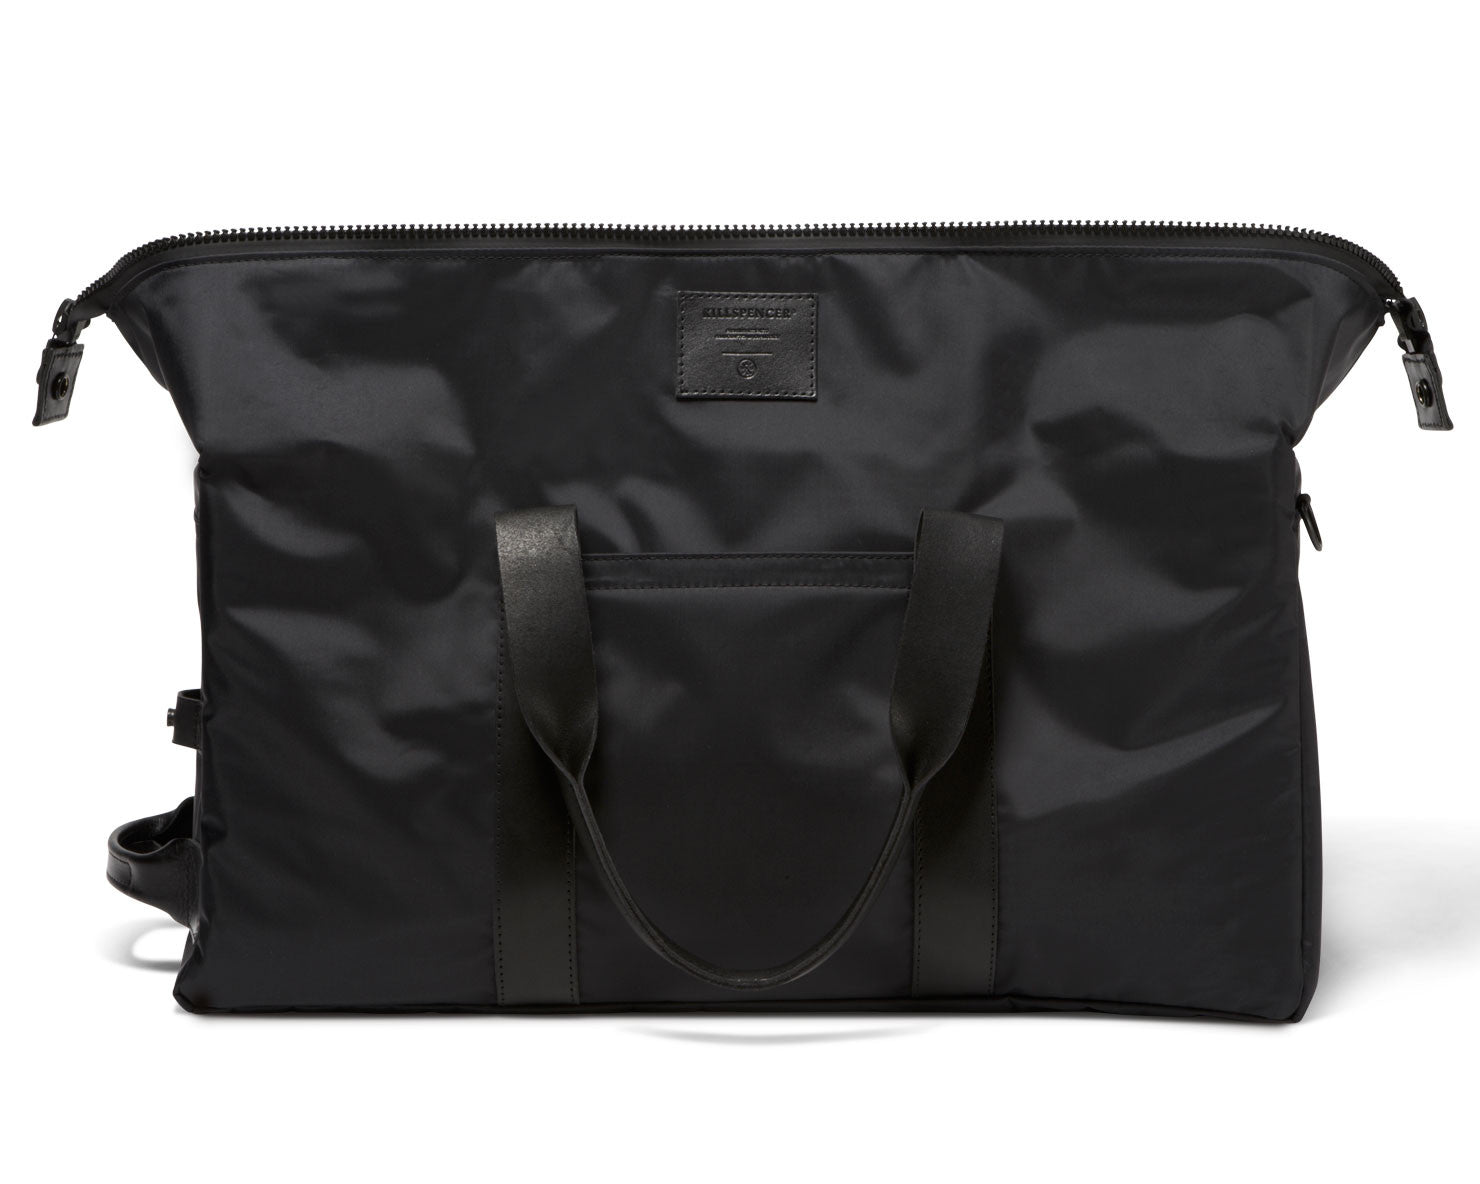 WEEKENDER 3.0 | KILLSPENCER® - Black Nylon